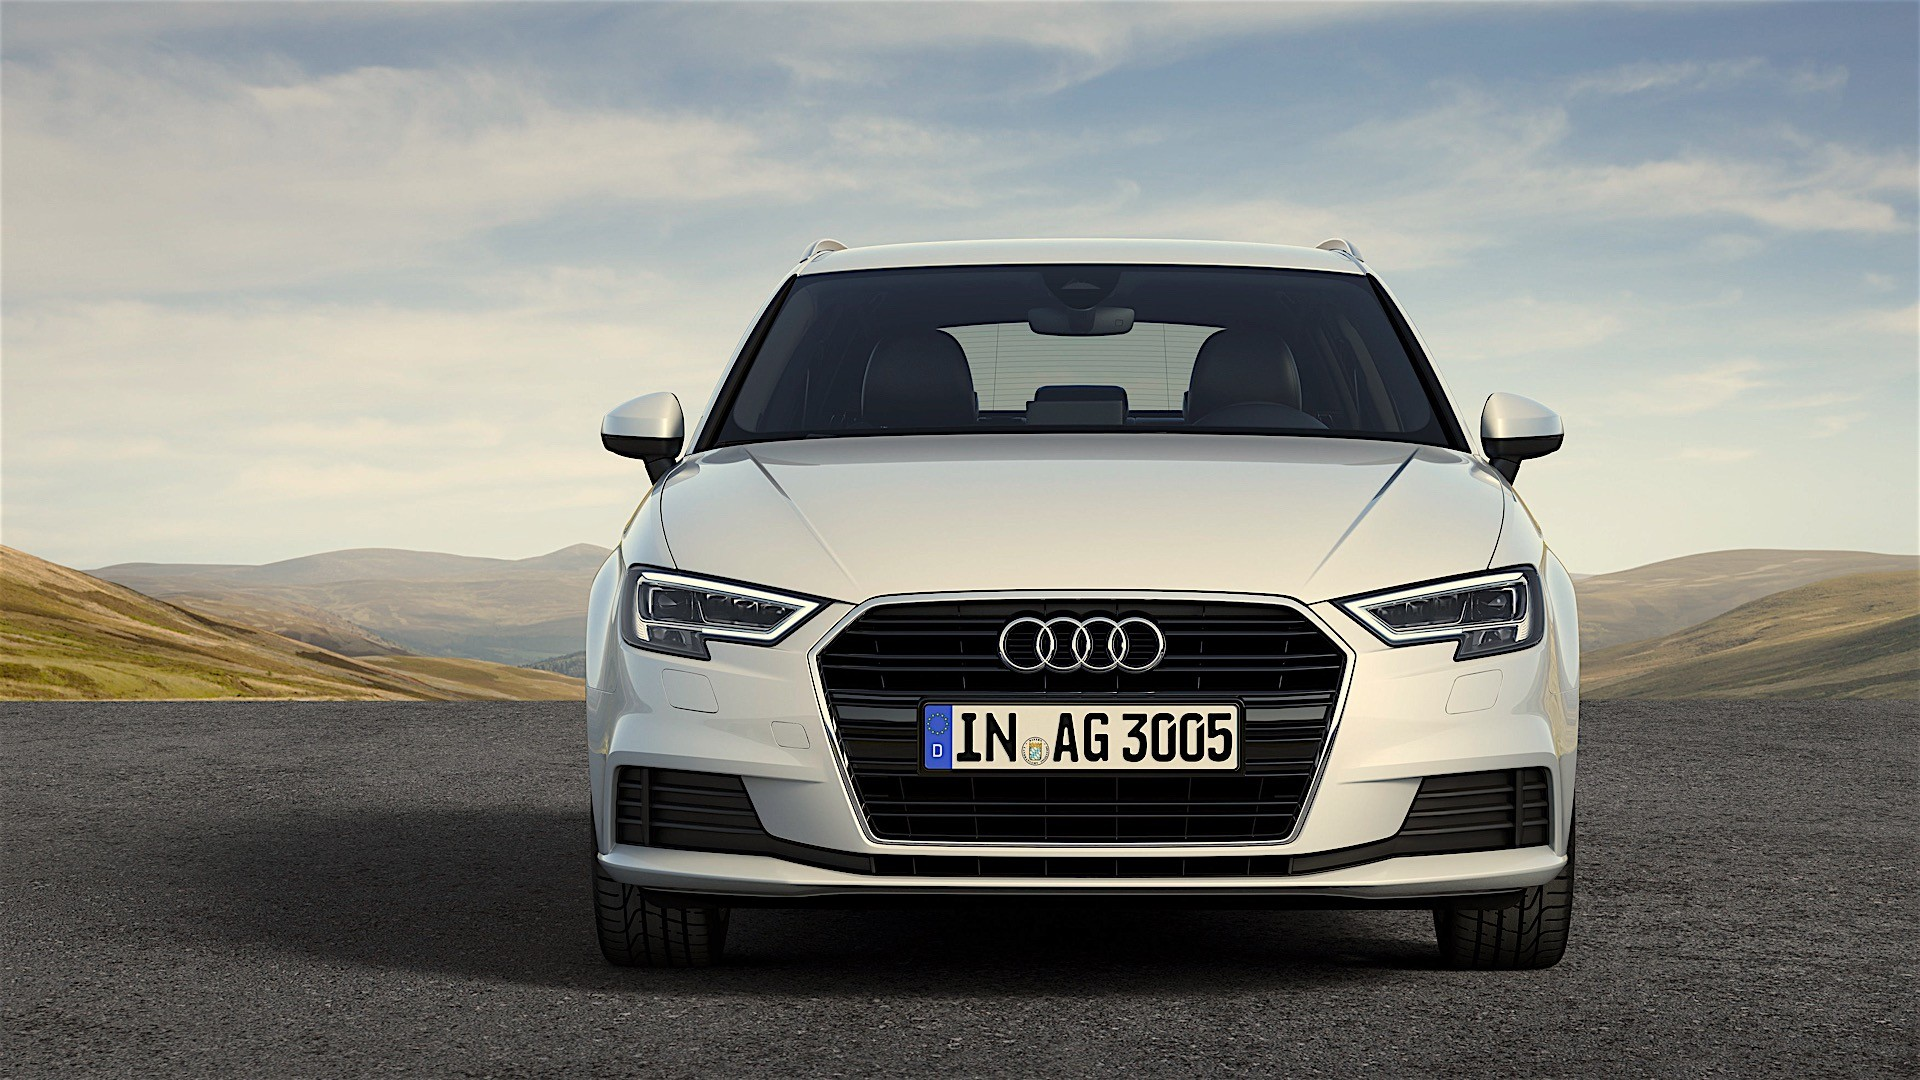 2017 audi a3 facelift configurator launched in germany s3 not ready yet autoevolution. Black Bedroom Furniture Sets. Home Design Ideas